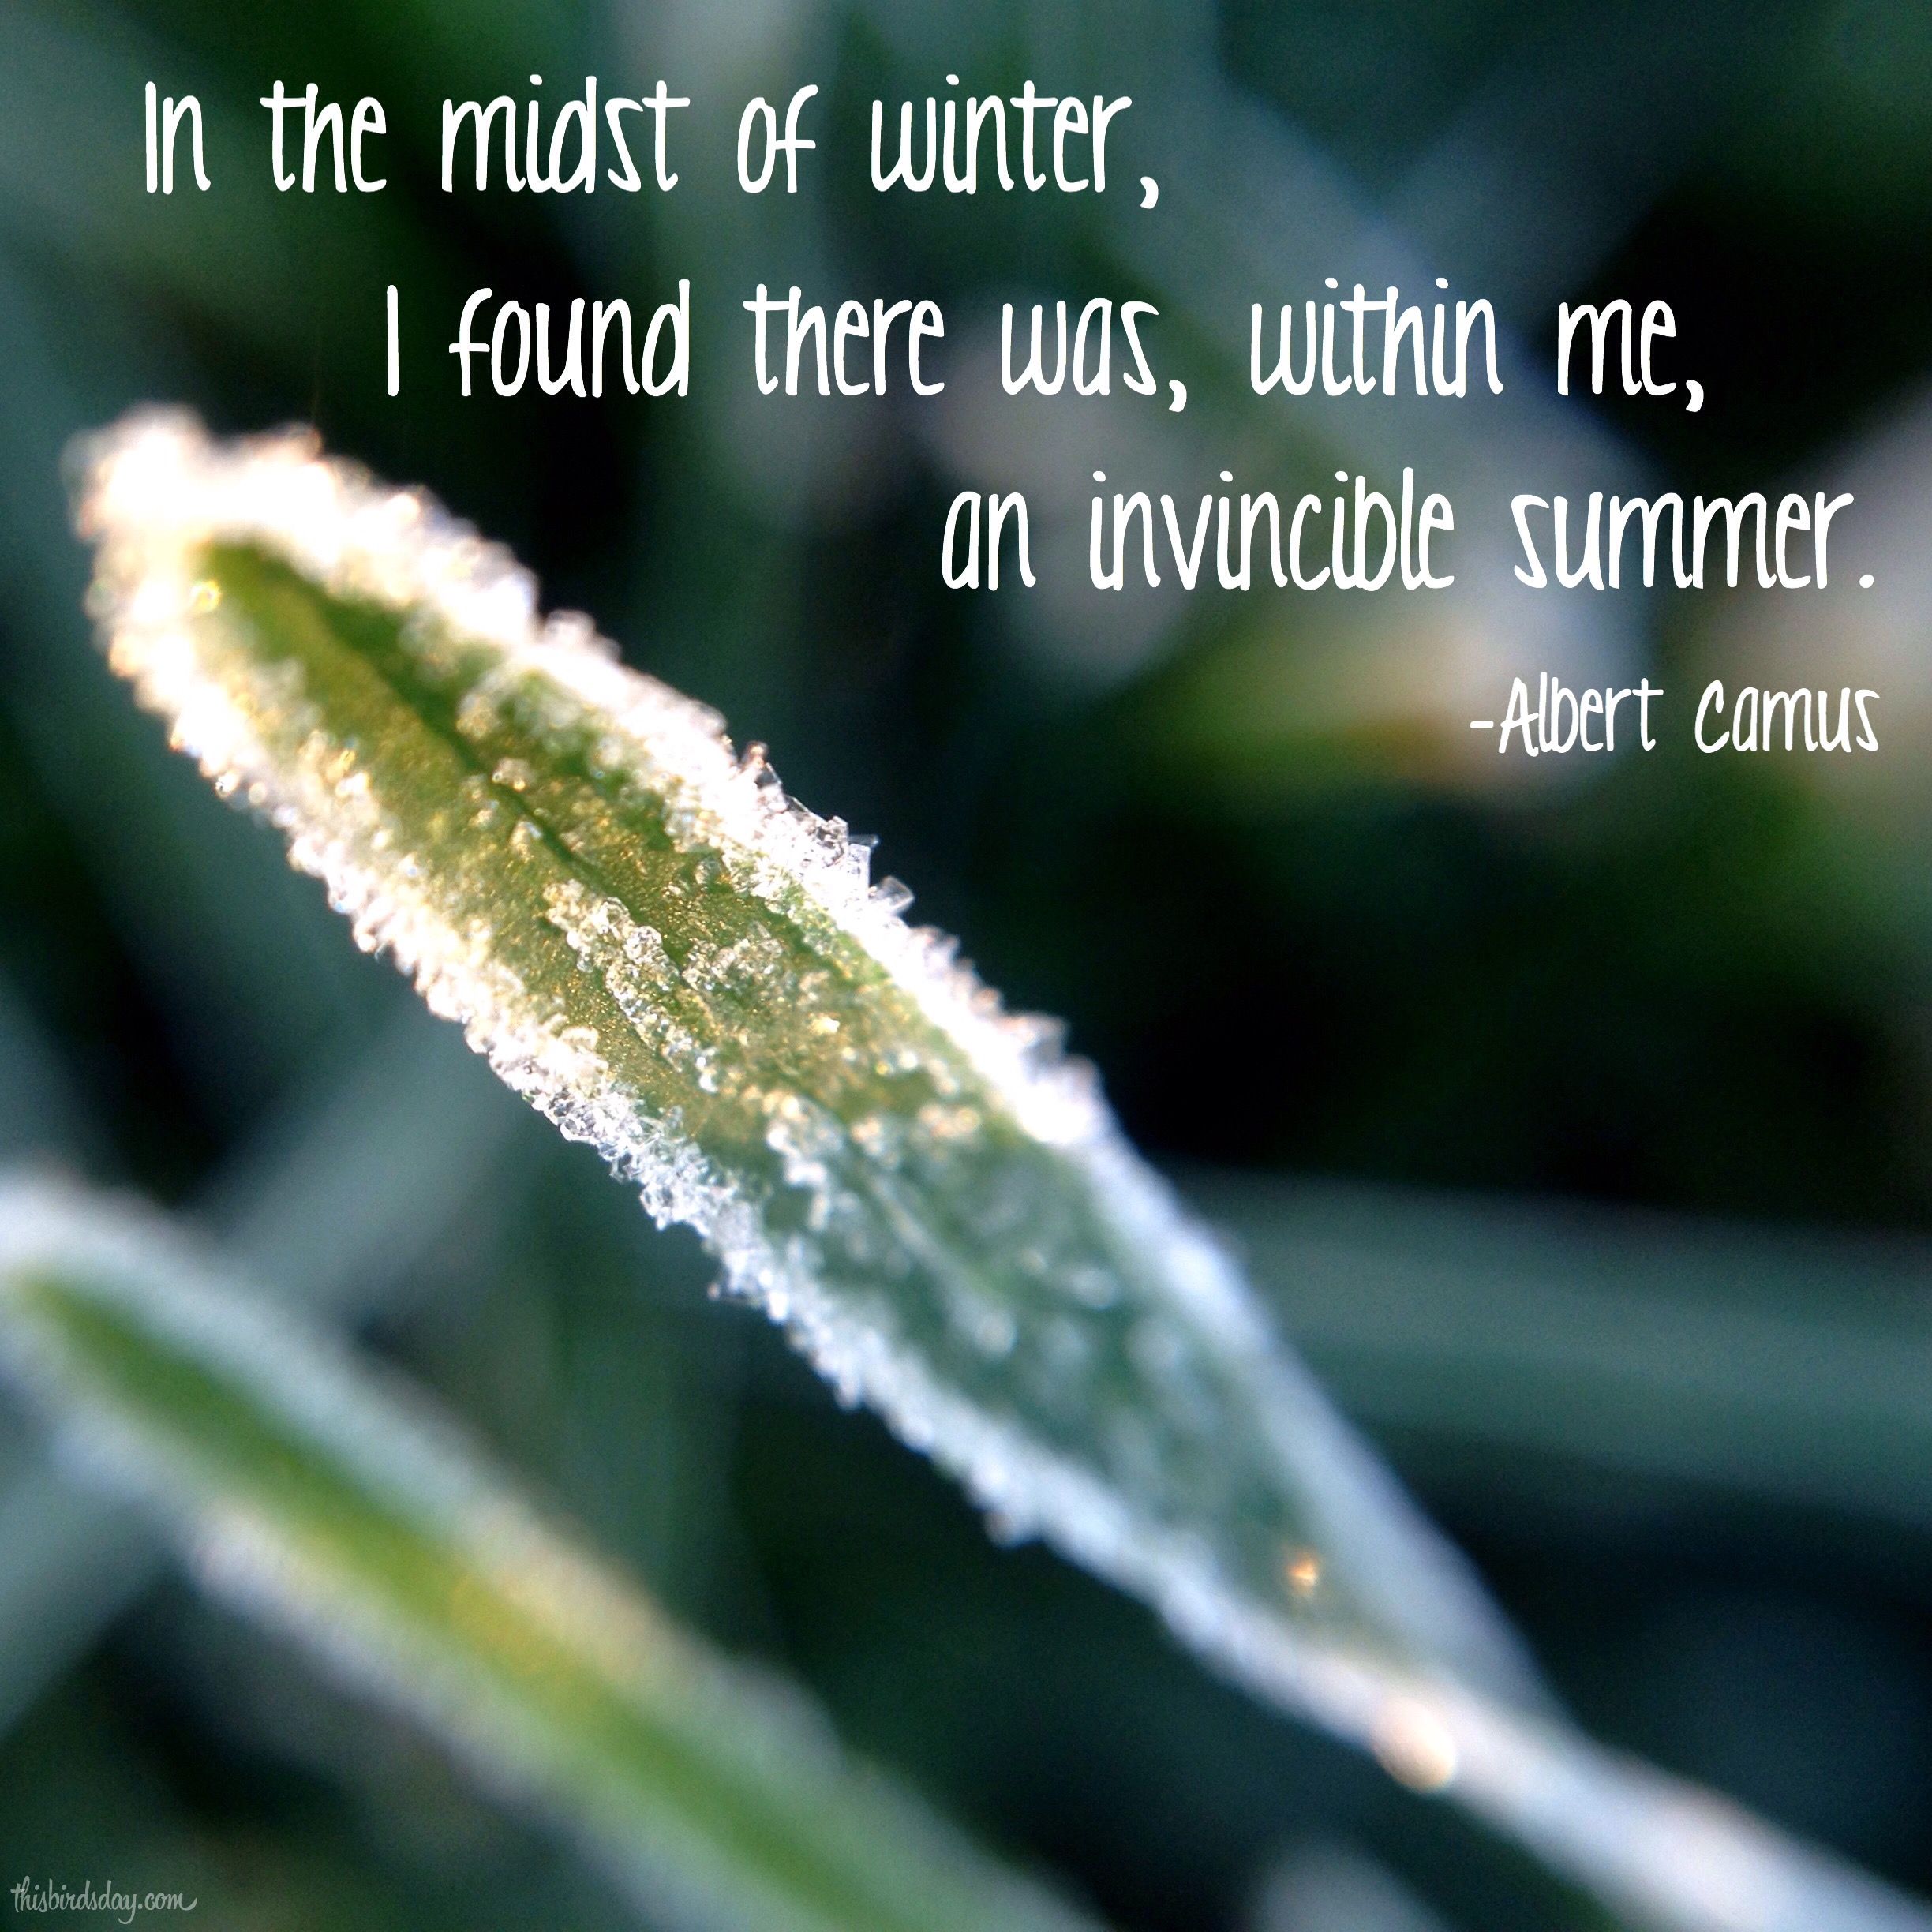 """""""In the midst of winter, I found there was, within me, an invincible summer."""" Albert Camus. Photo copyright Sheri Landry"""